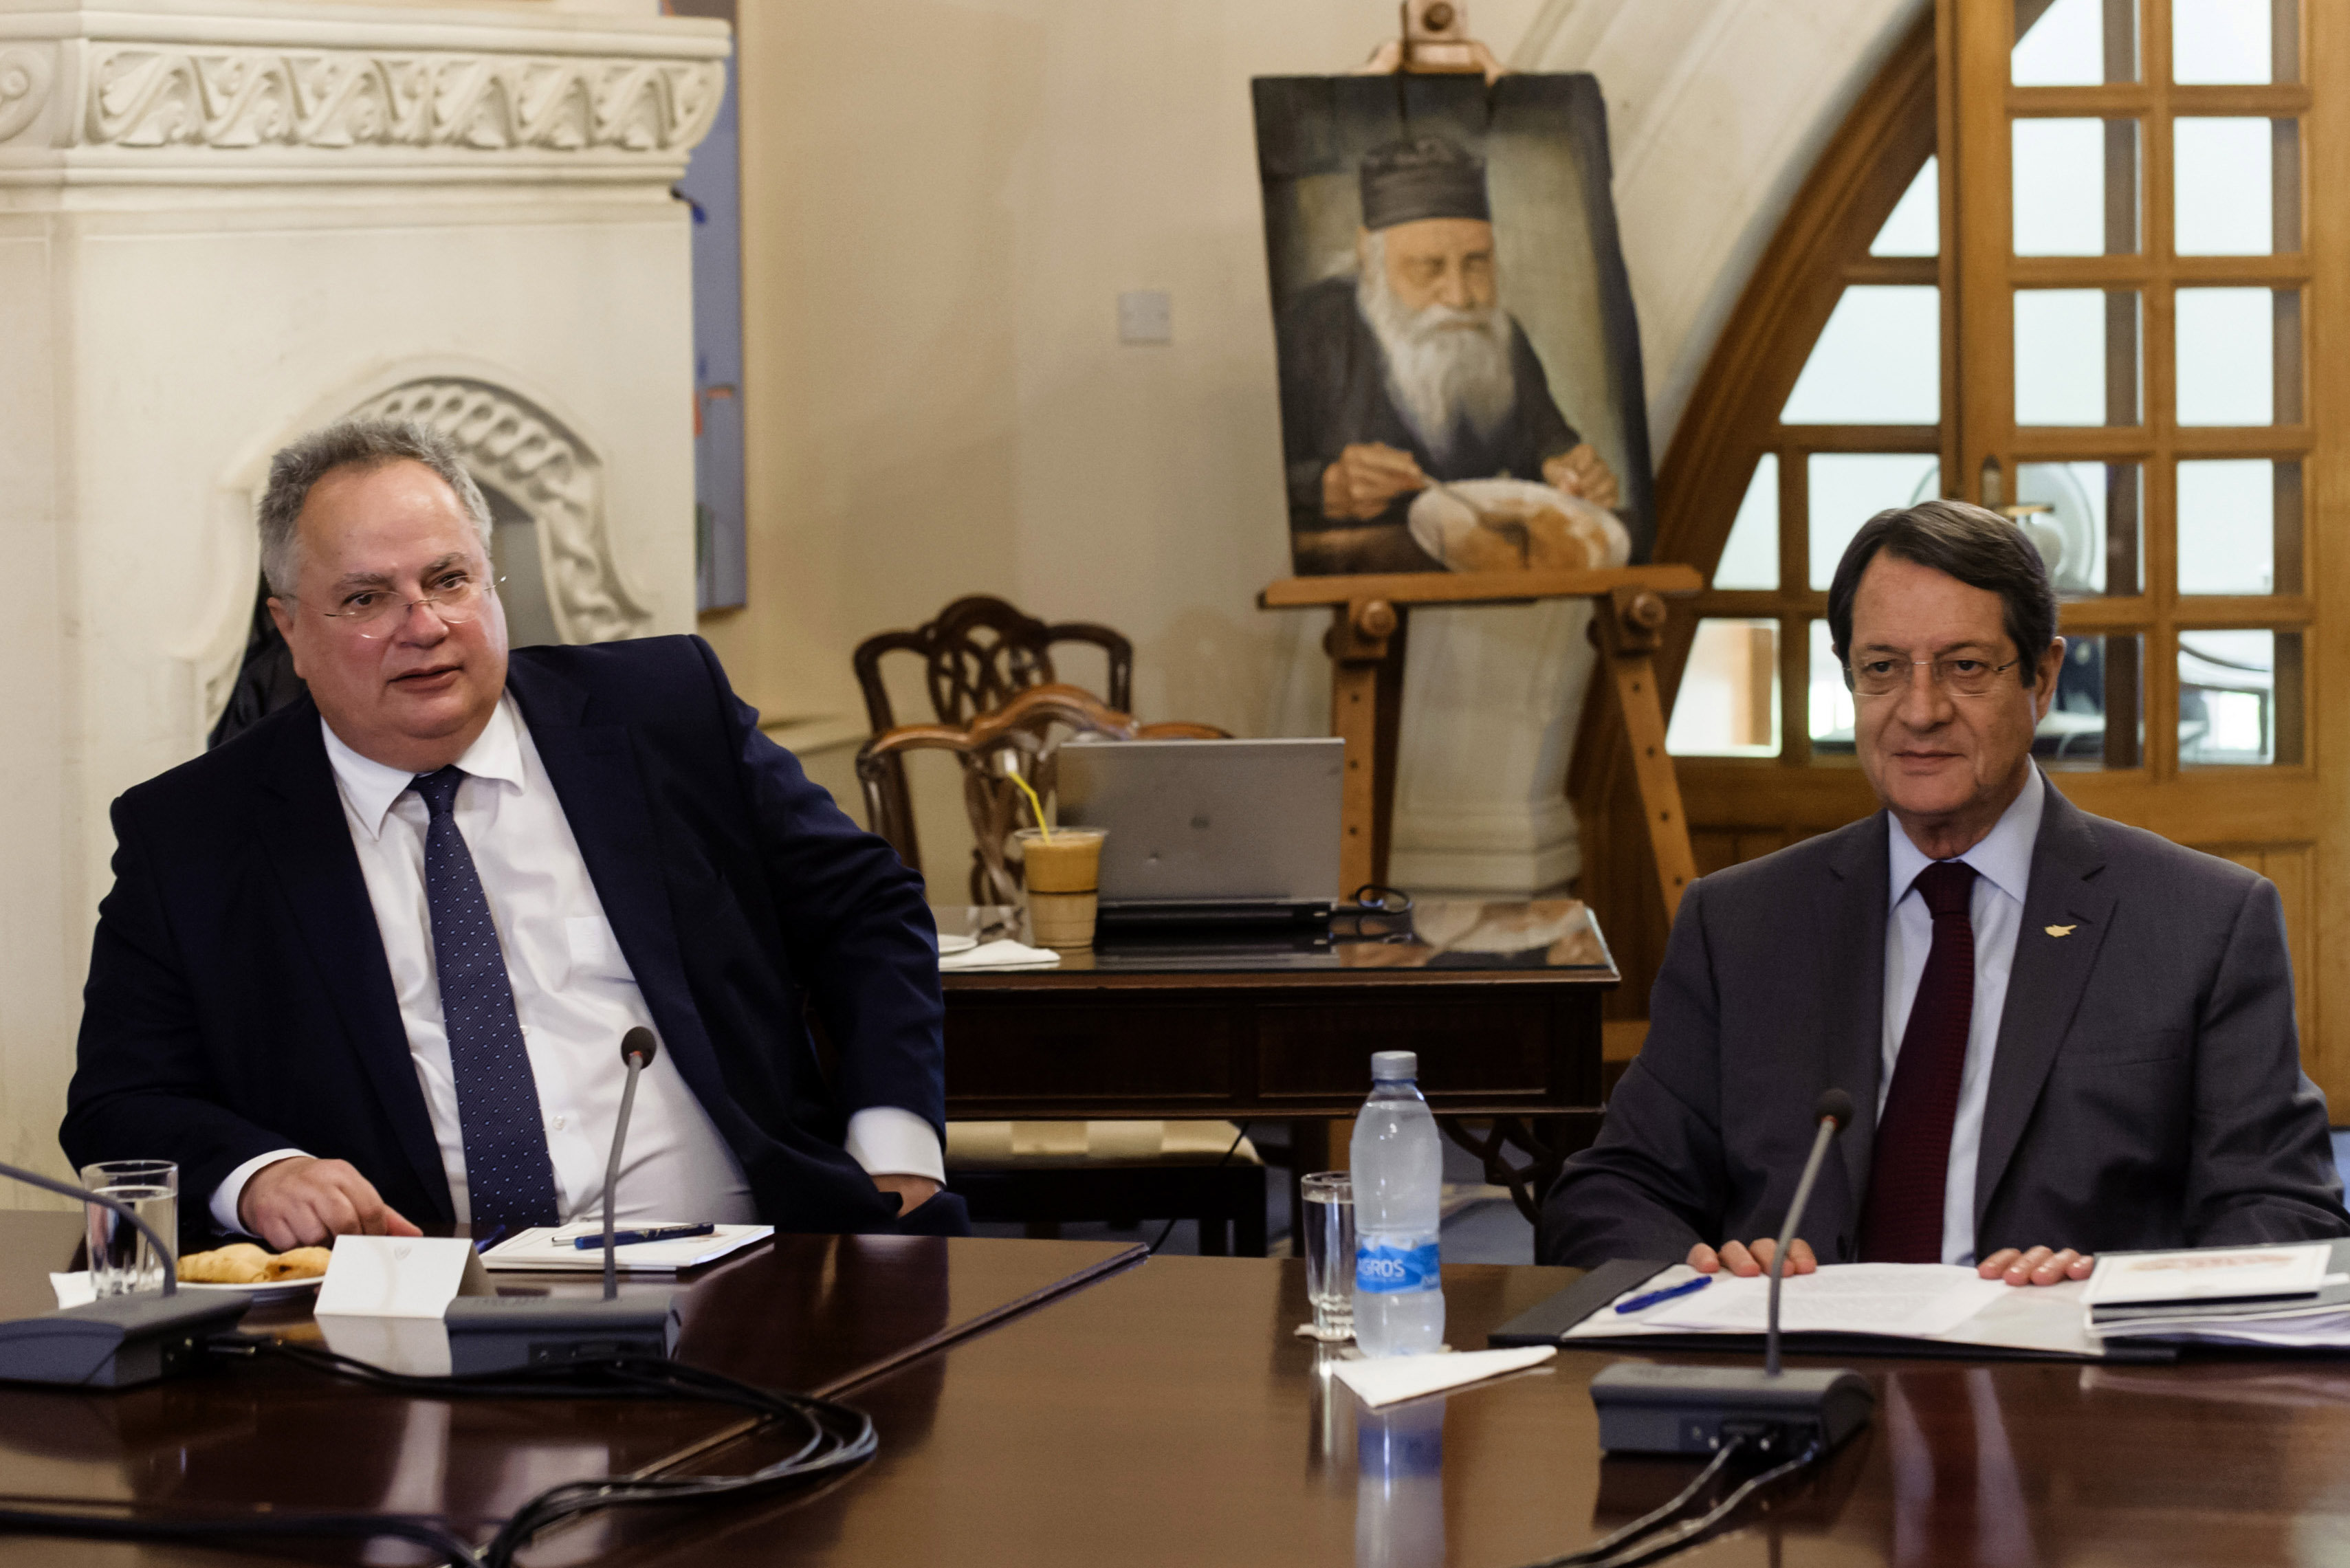 Greek Foreign Minister Nikos Kotzias (L) sits next to Cypriot President Nicos Anastasiades (R) on July 18, 2017 in the presidential palace in Nicosia during a national council meeting of Greek Cypriot party political leaders. The foreign ministers of Greece and Turkey are in Cyprus on separate missions to review the way forward after UN-backed reunification talks collapsed in Switzerland earlier this month. Turkish Foreign Minister Mevlut Cavusoglu is to hold talks in breakaway northern Cyprus, Ankara announced.